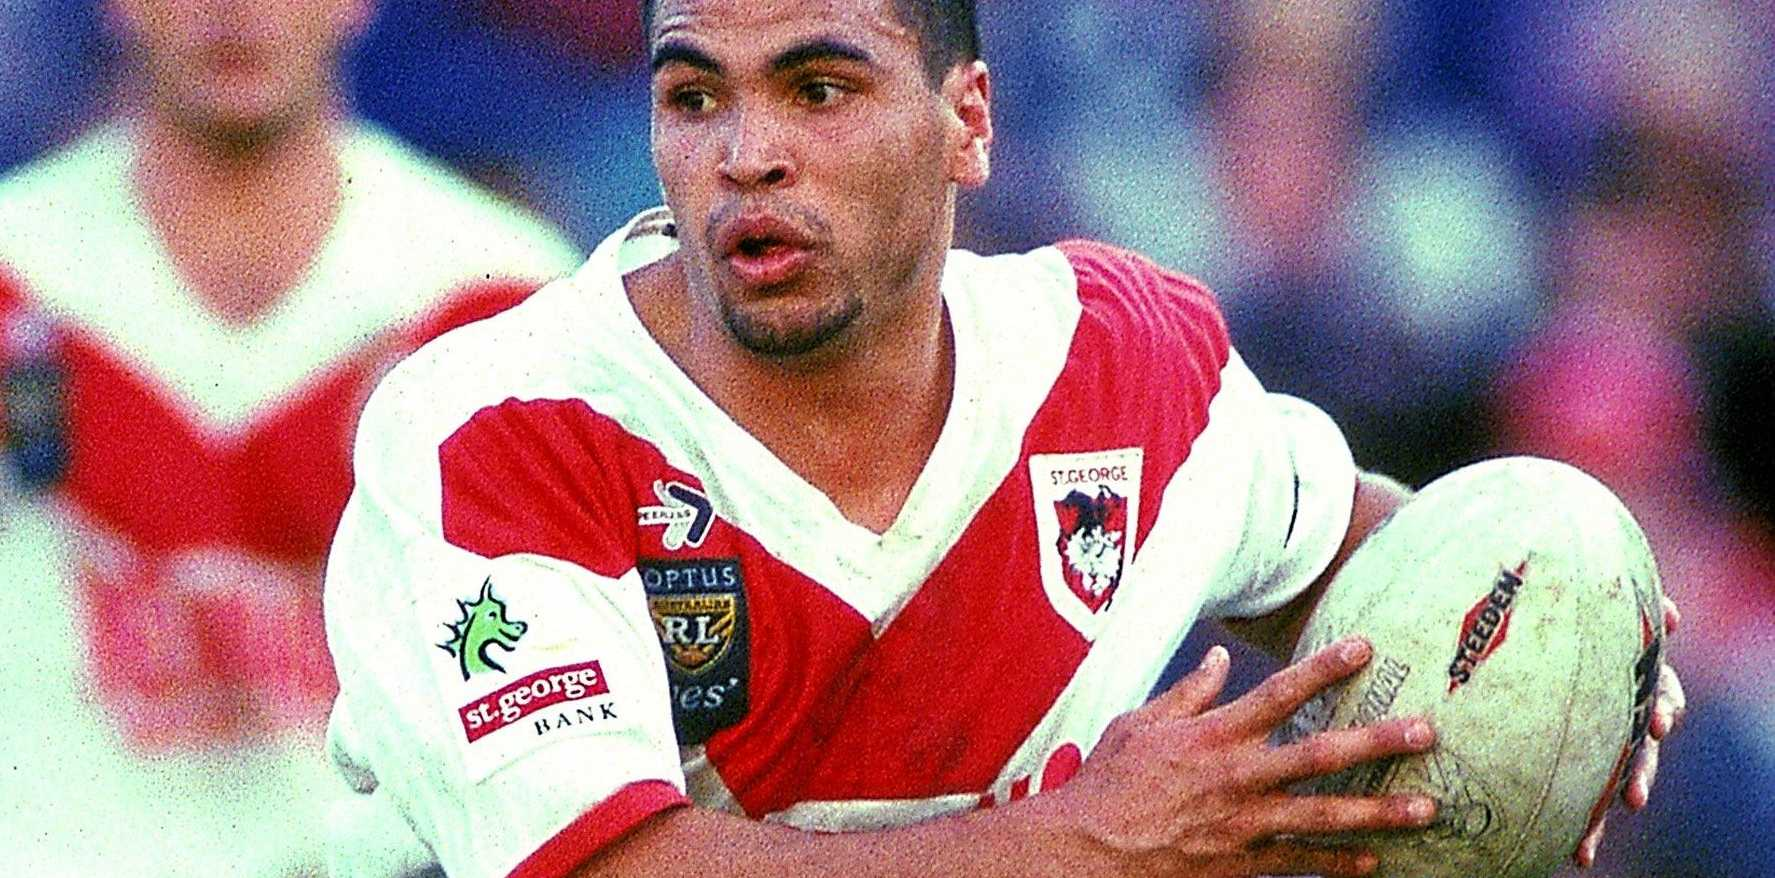 Anthony Mundine playing for the Dragons in 1996.